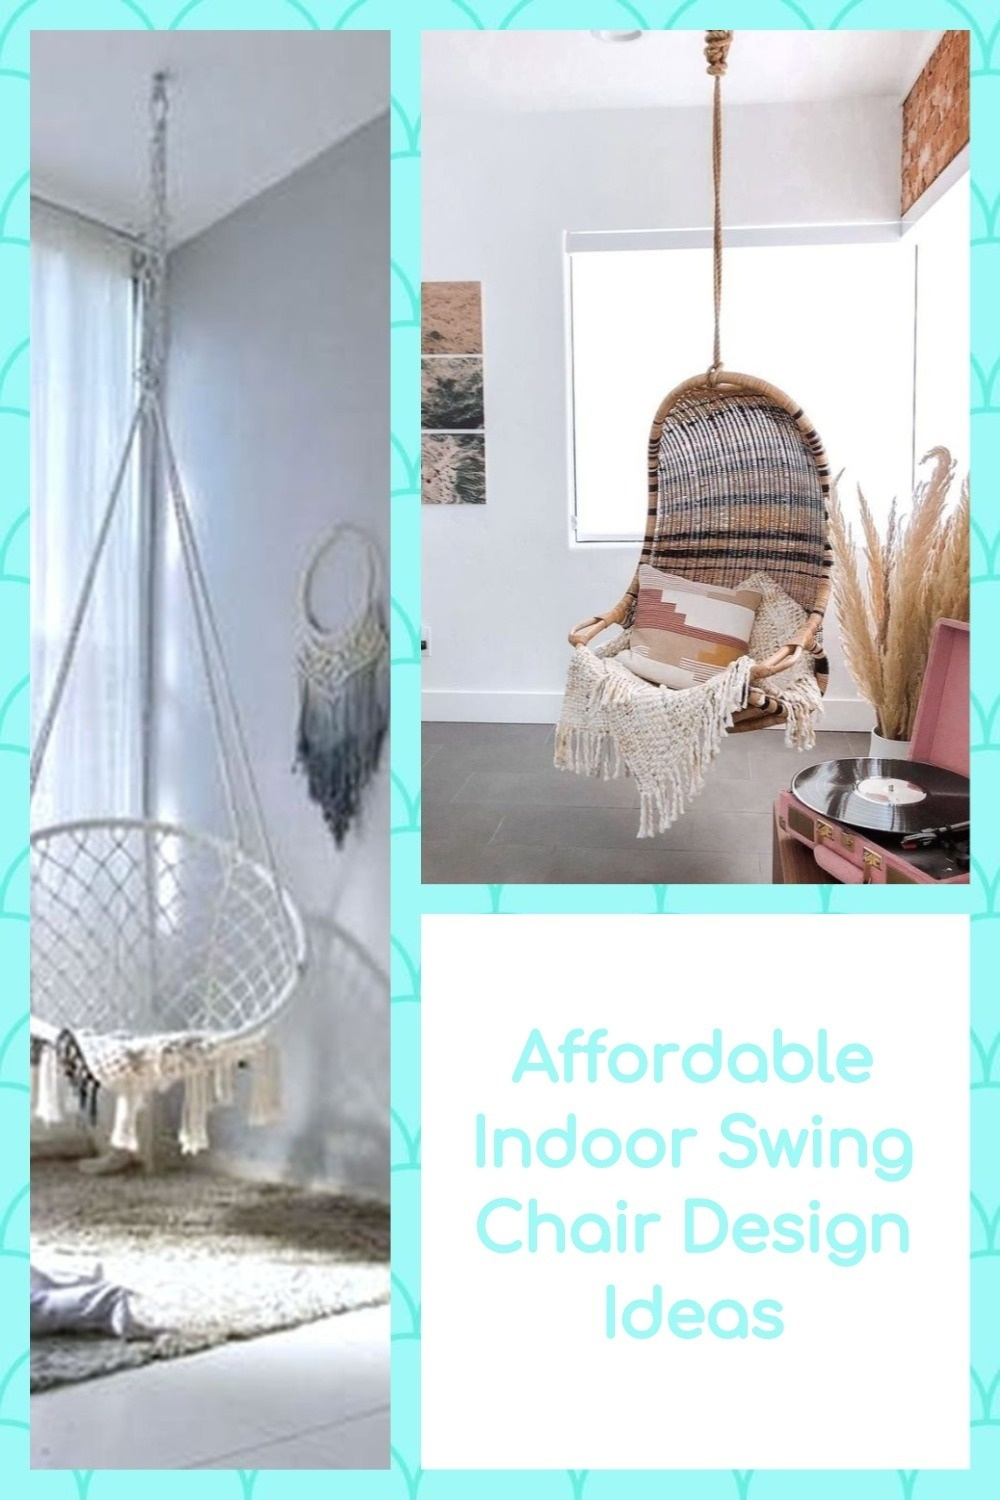 Affordable Indoor Swing Chair Design Ideas